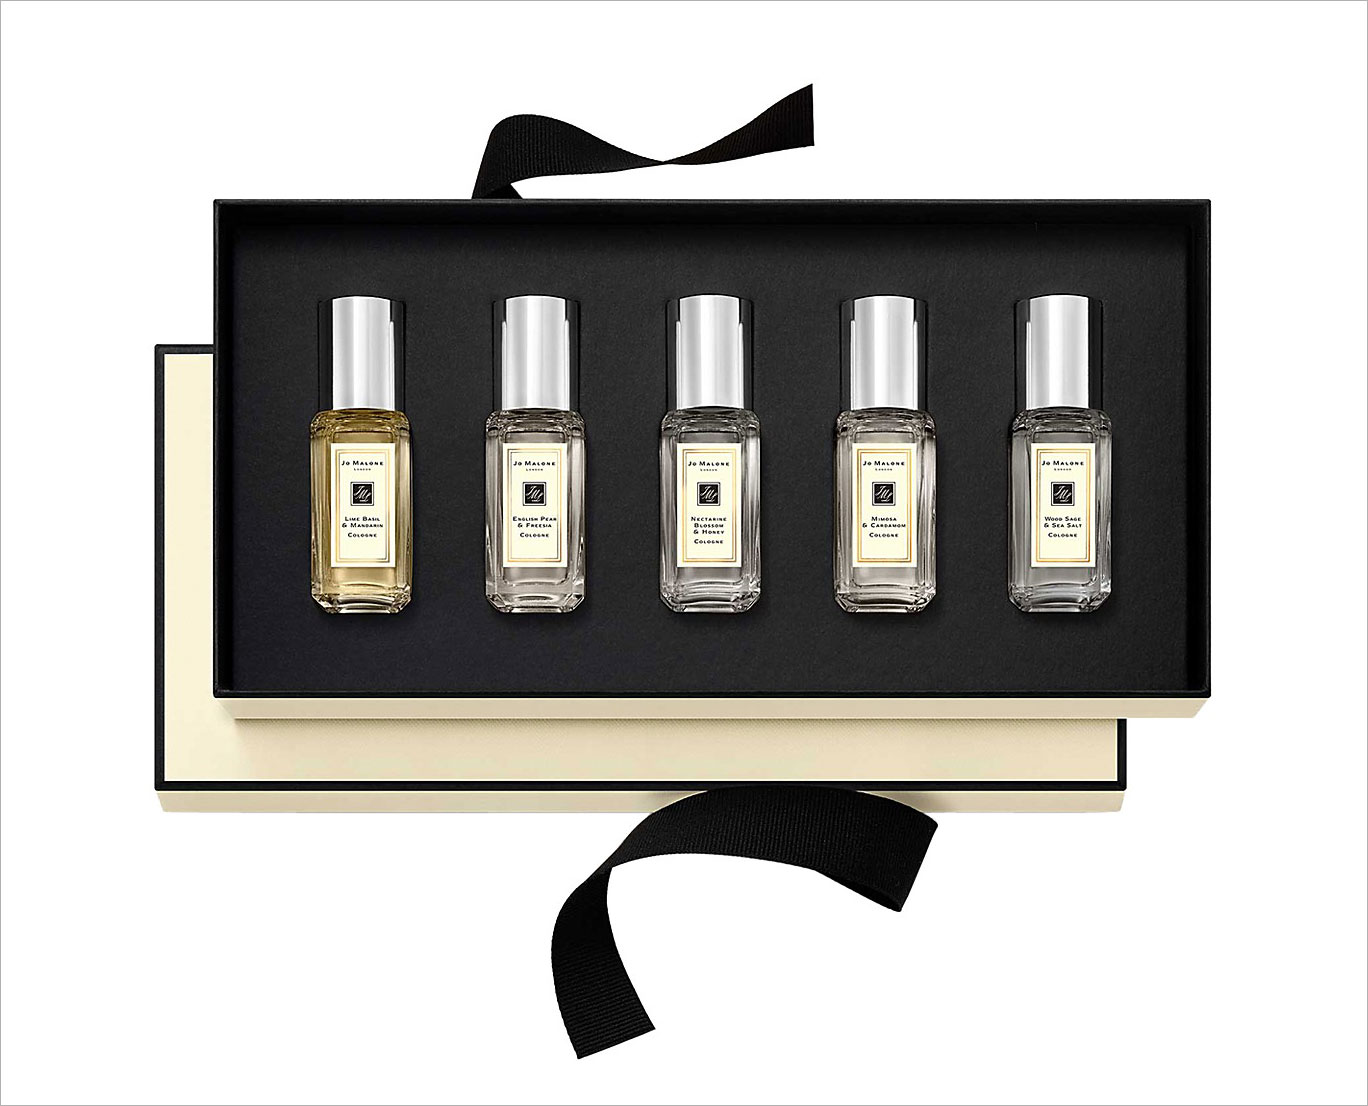 engagement gift idea engaged friend jo malone perfume fragrance set cologne collection